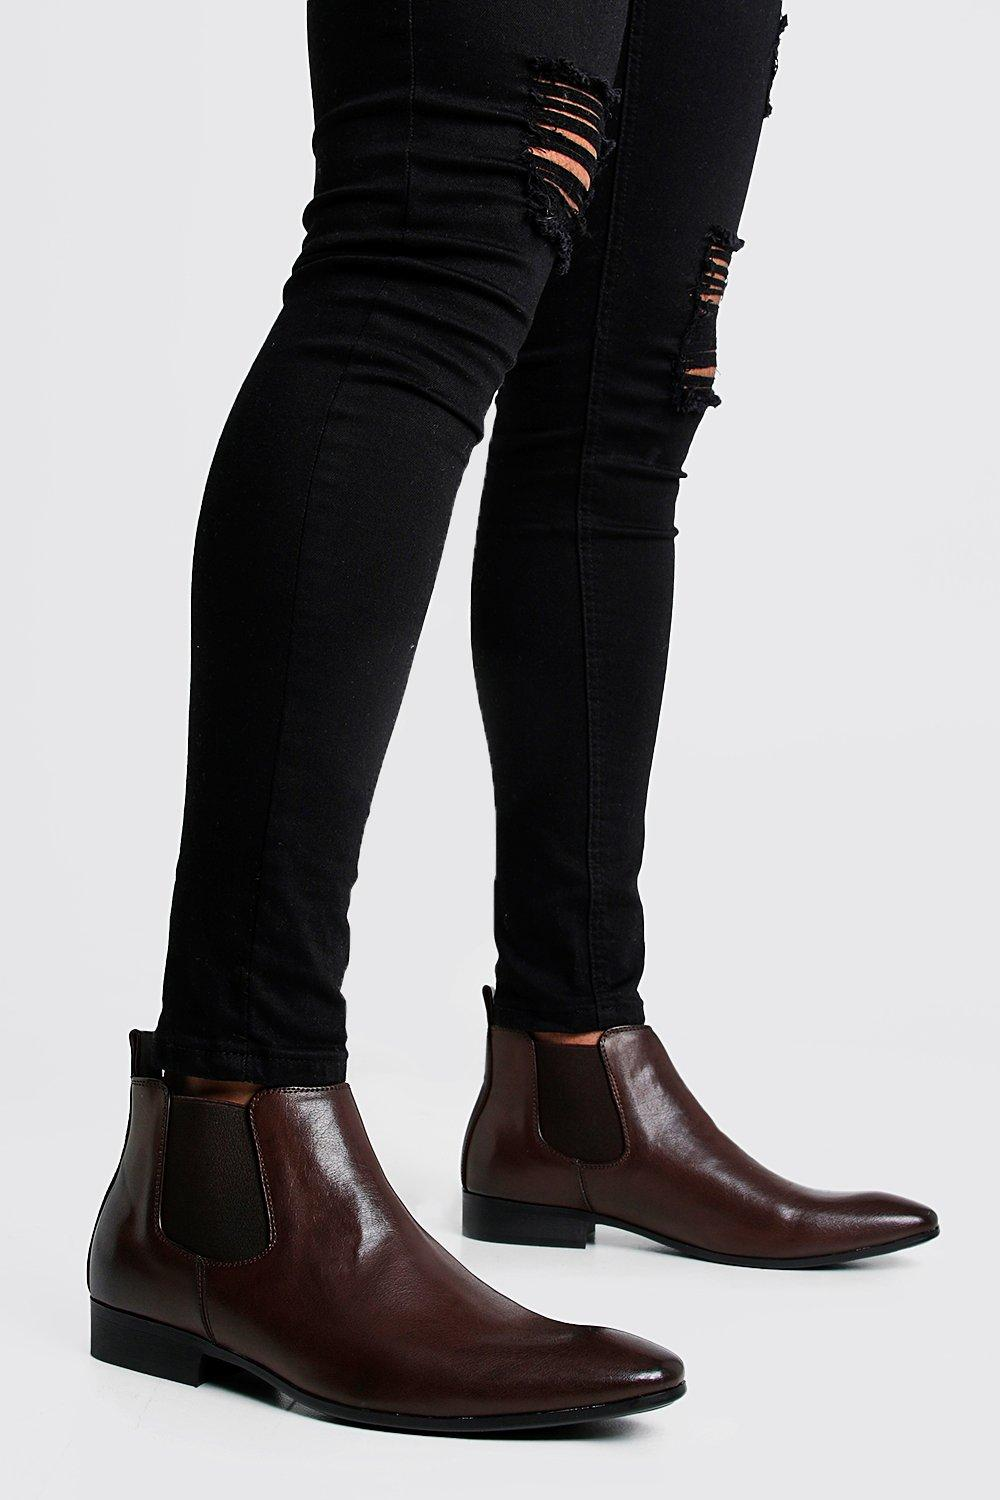 mens leather look chelsea boots - brown